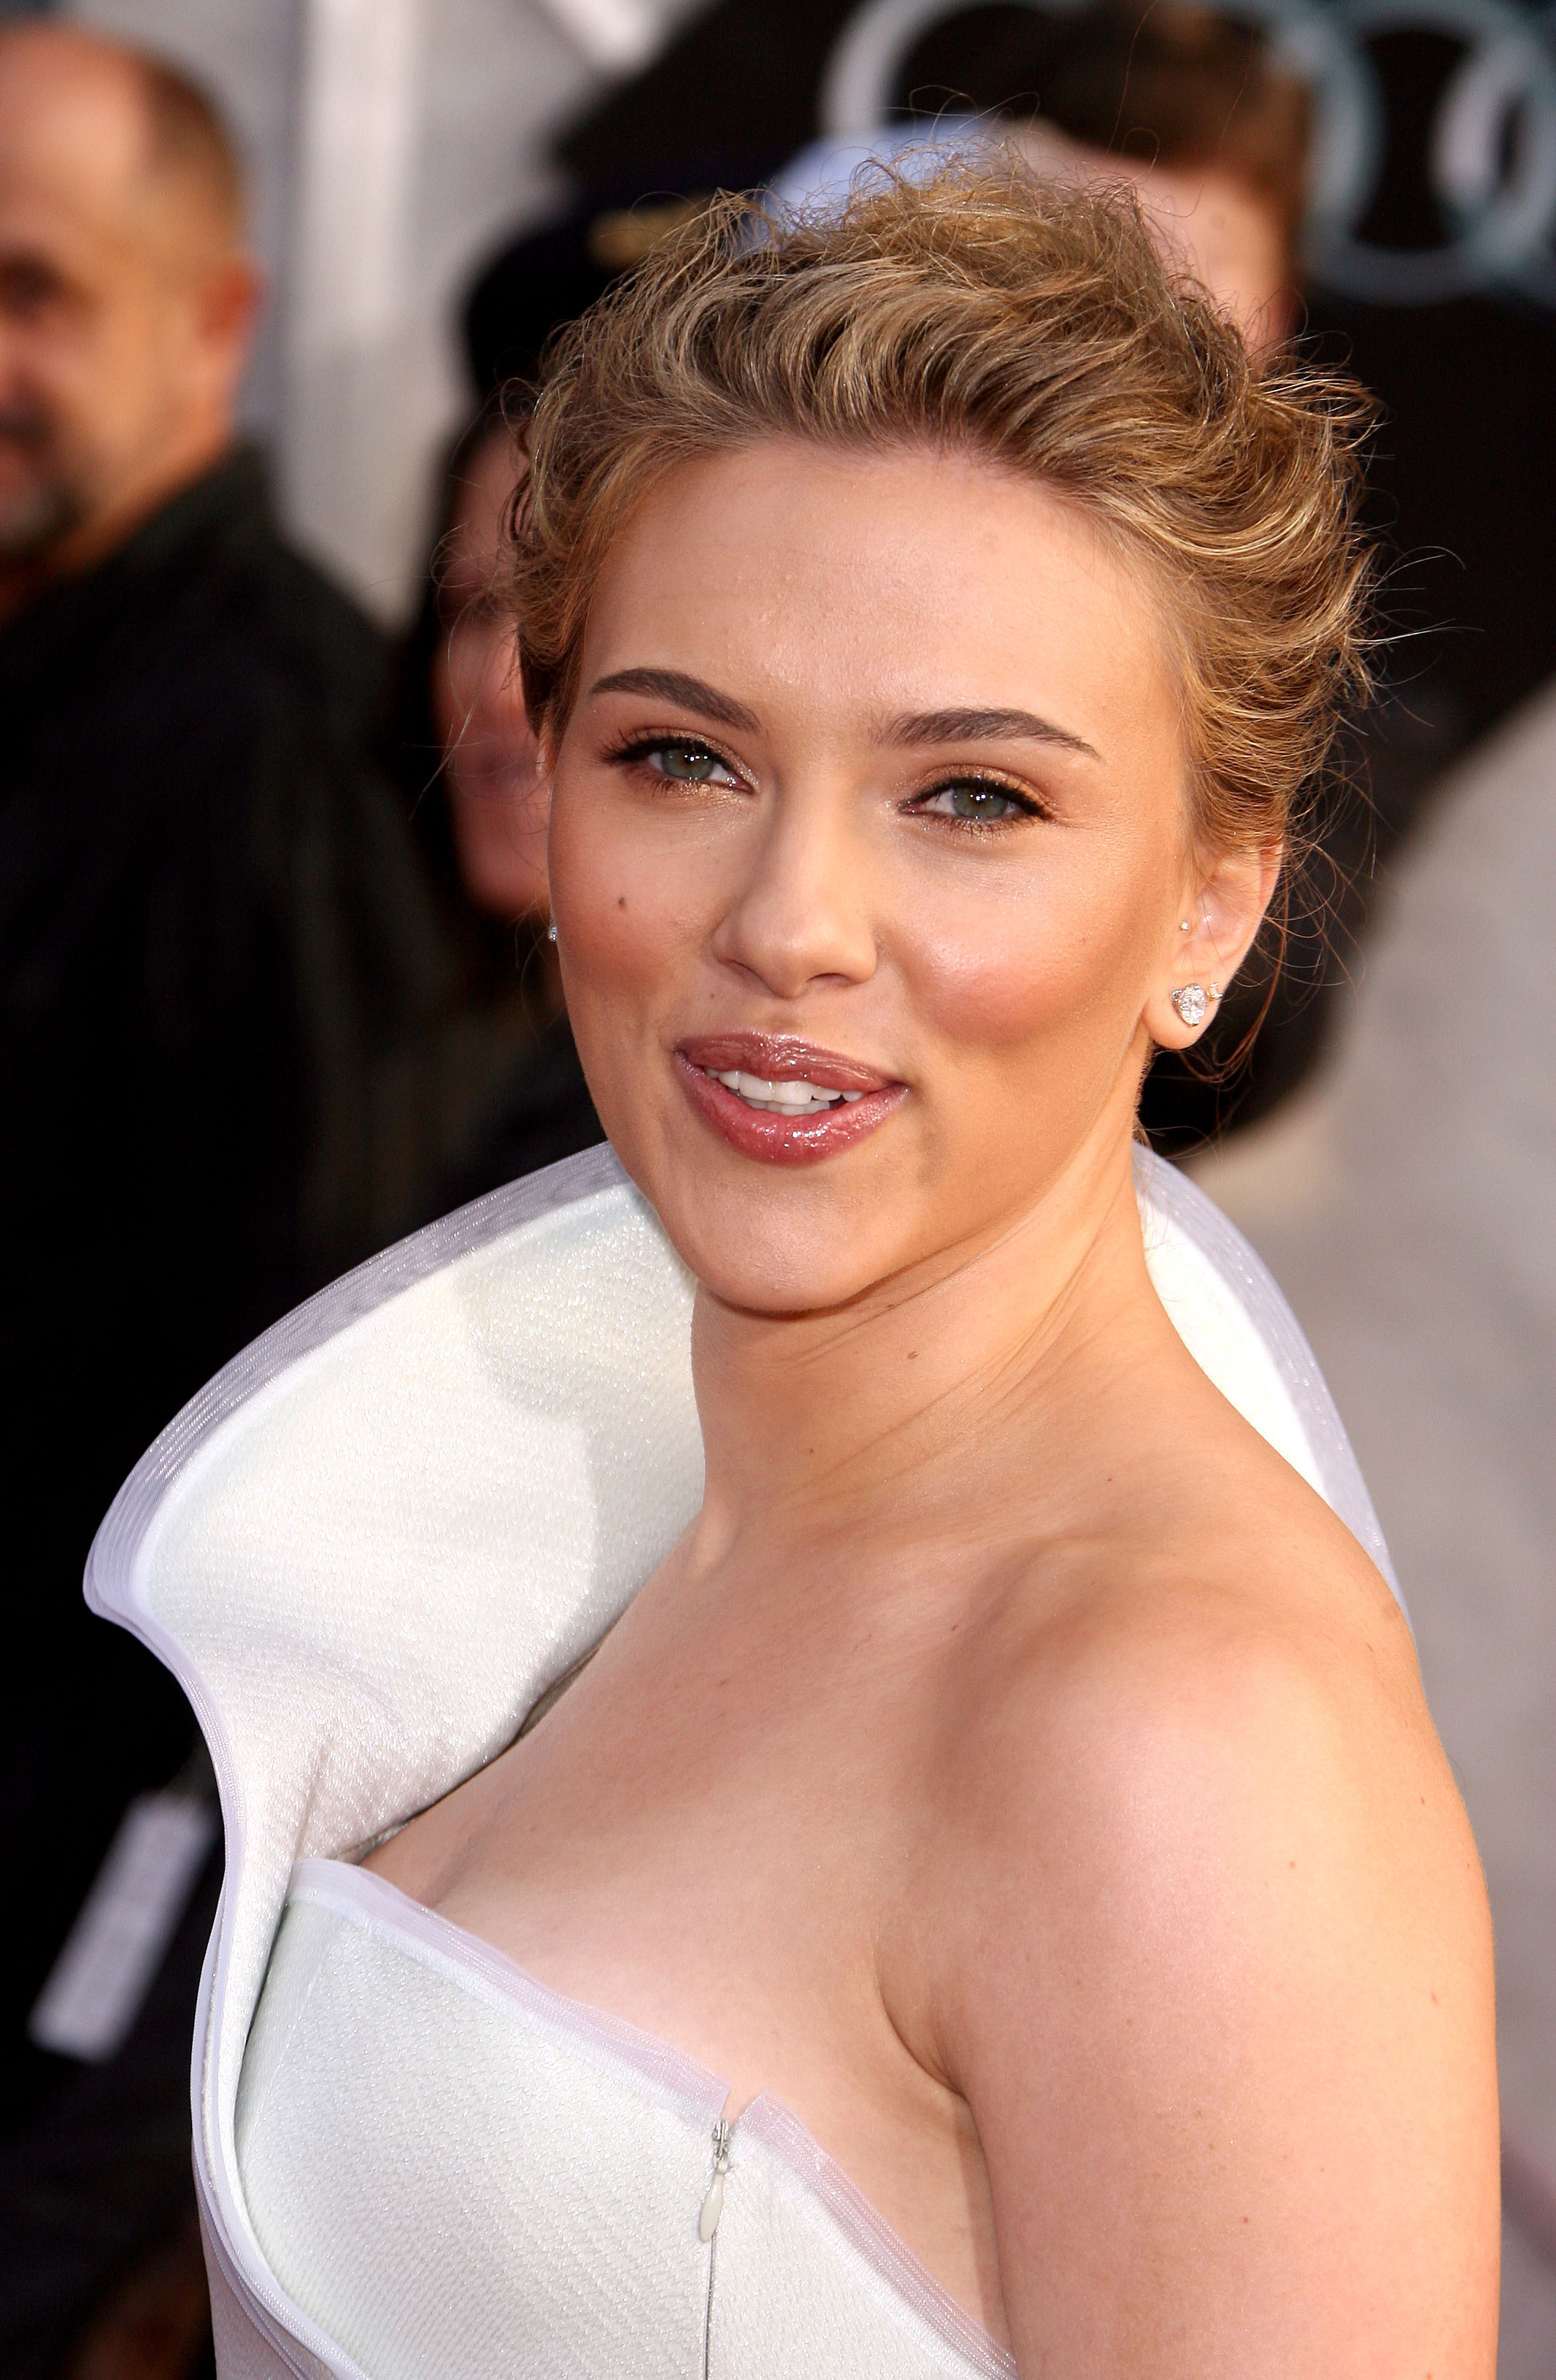 50703_celebrity_paradise.com_Scarlett_Johansson_Iron_Man_2_World_Premiere_in_Hollywood_26.04.2010_11_122_96lo.jpg